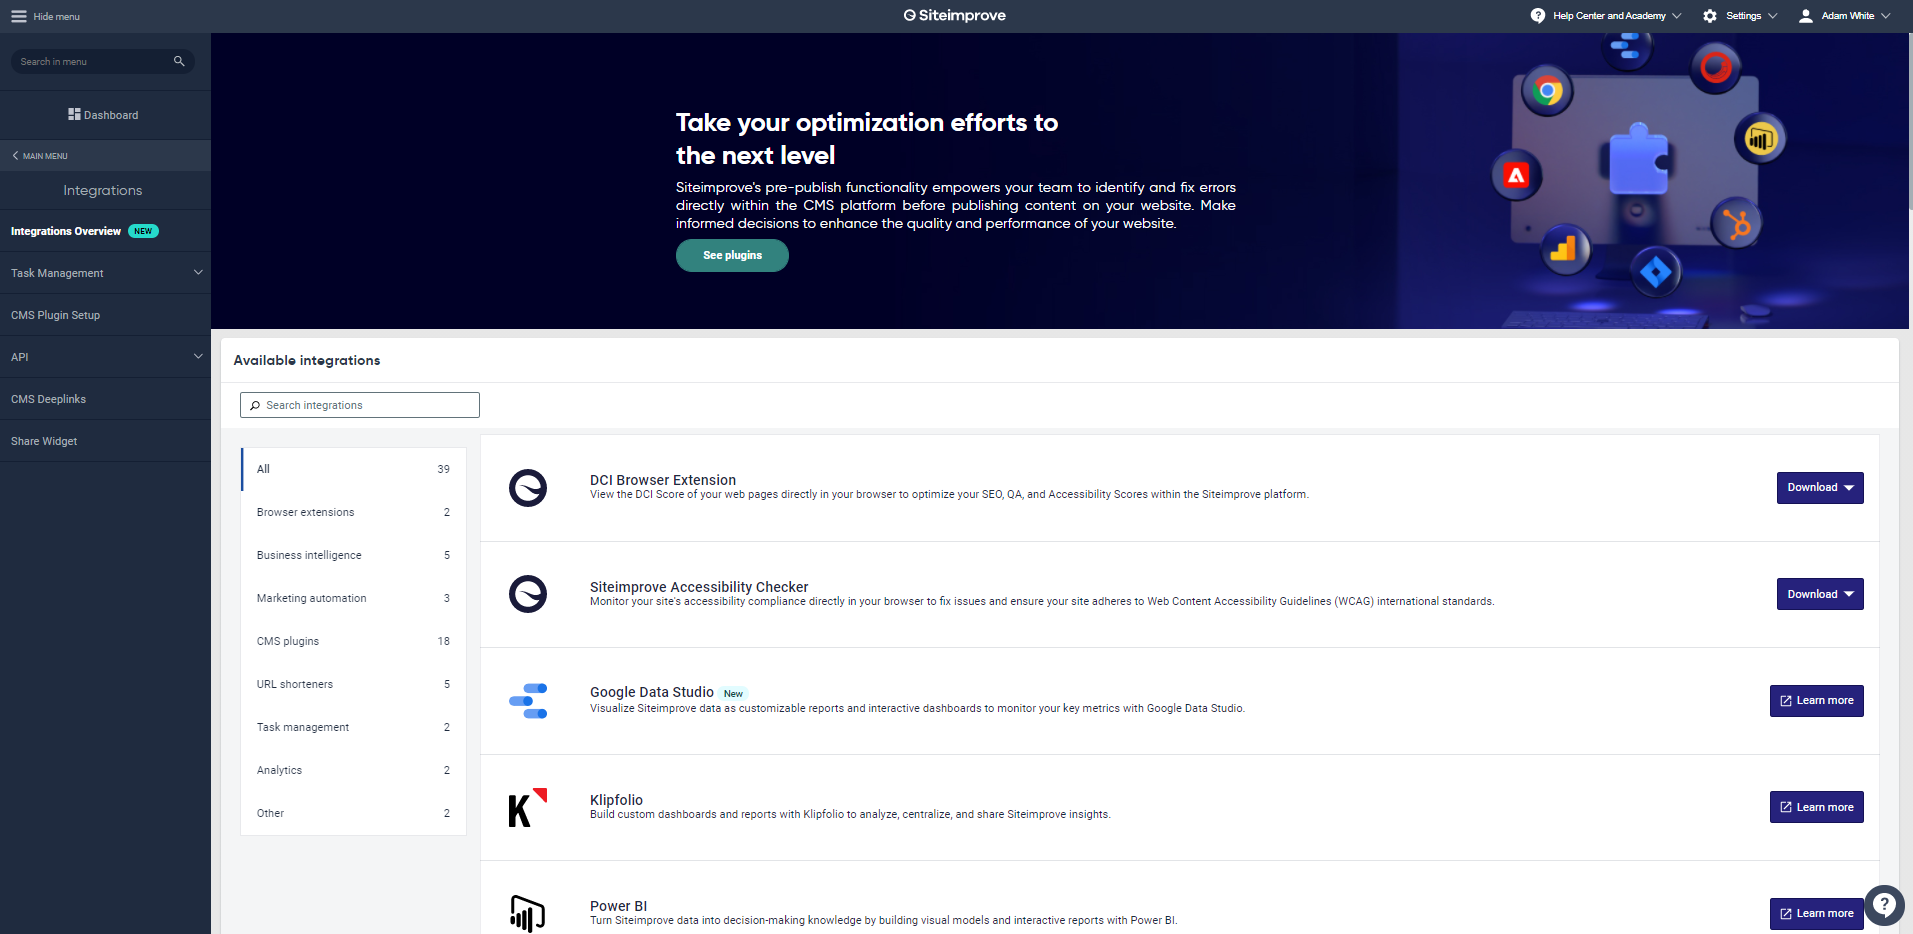 New Integrations Overview page